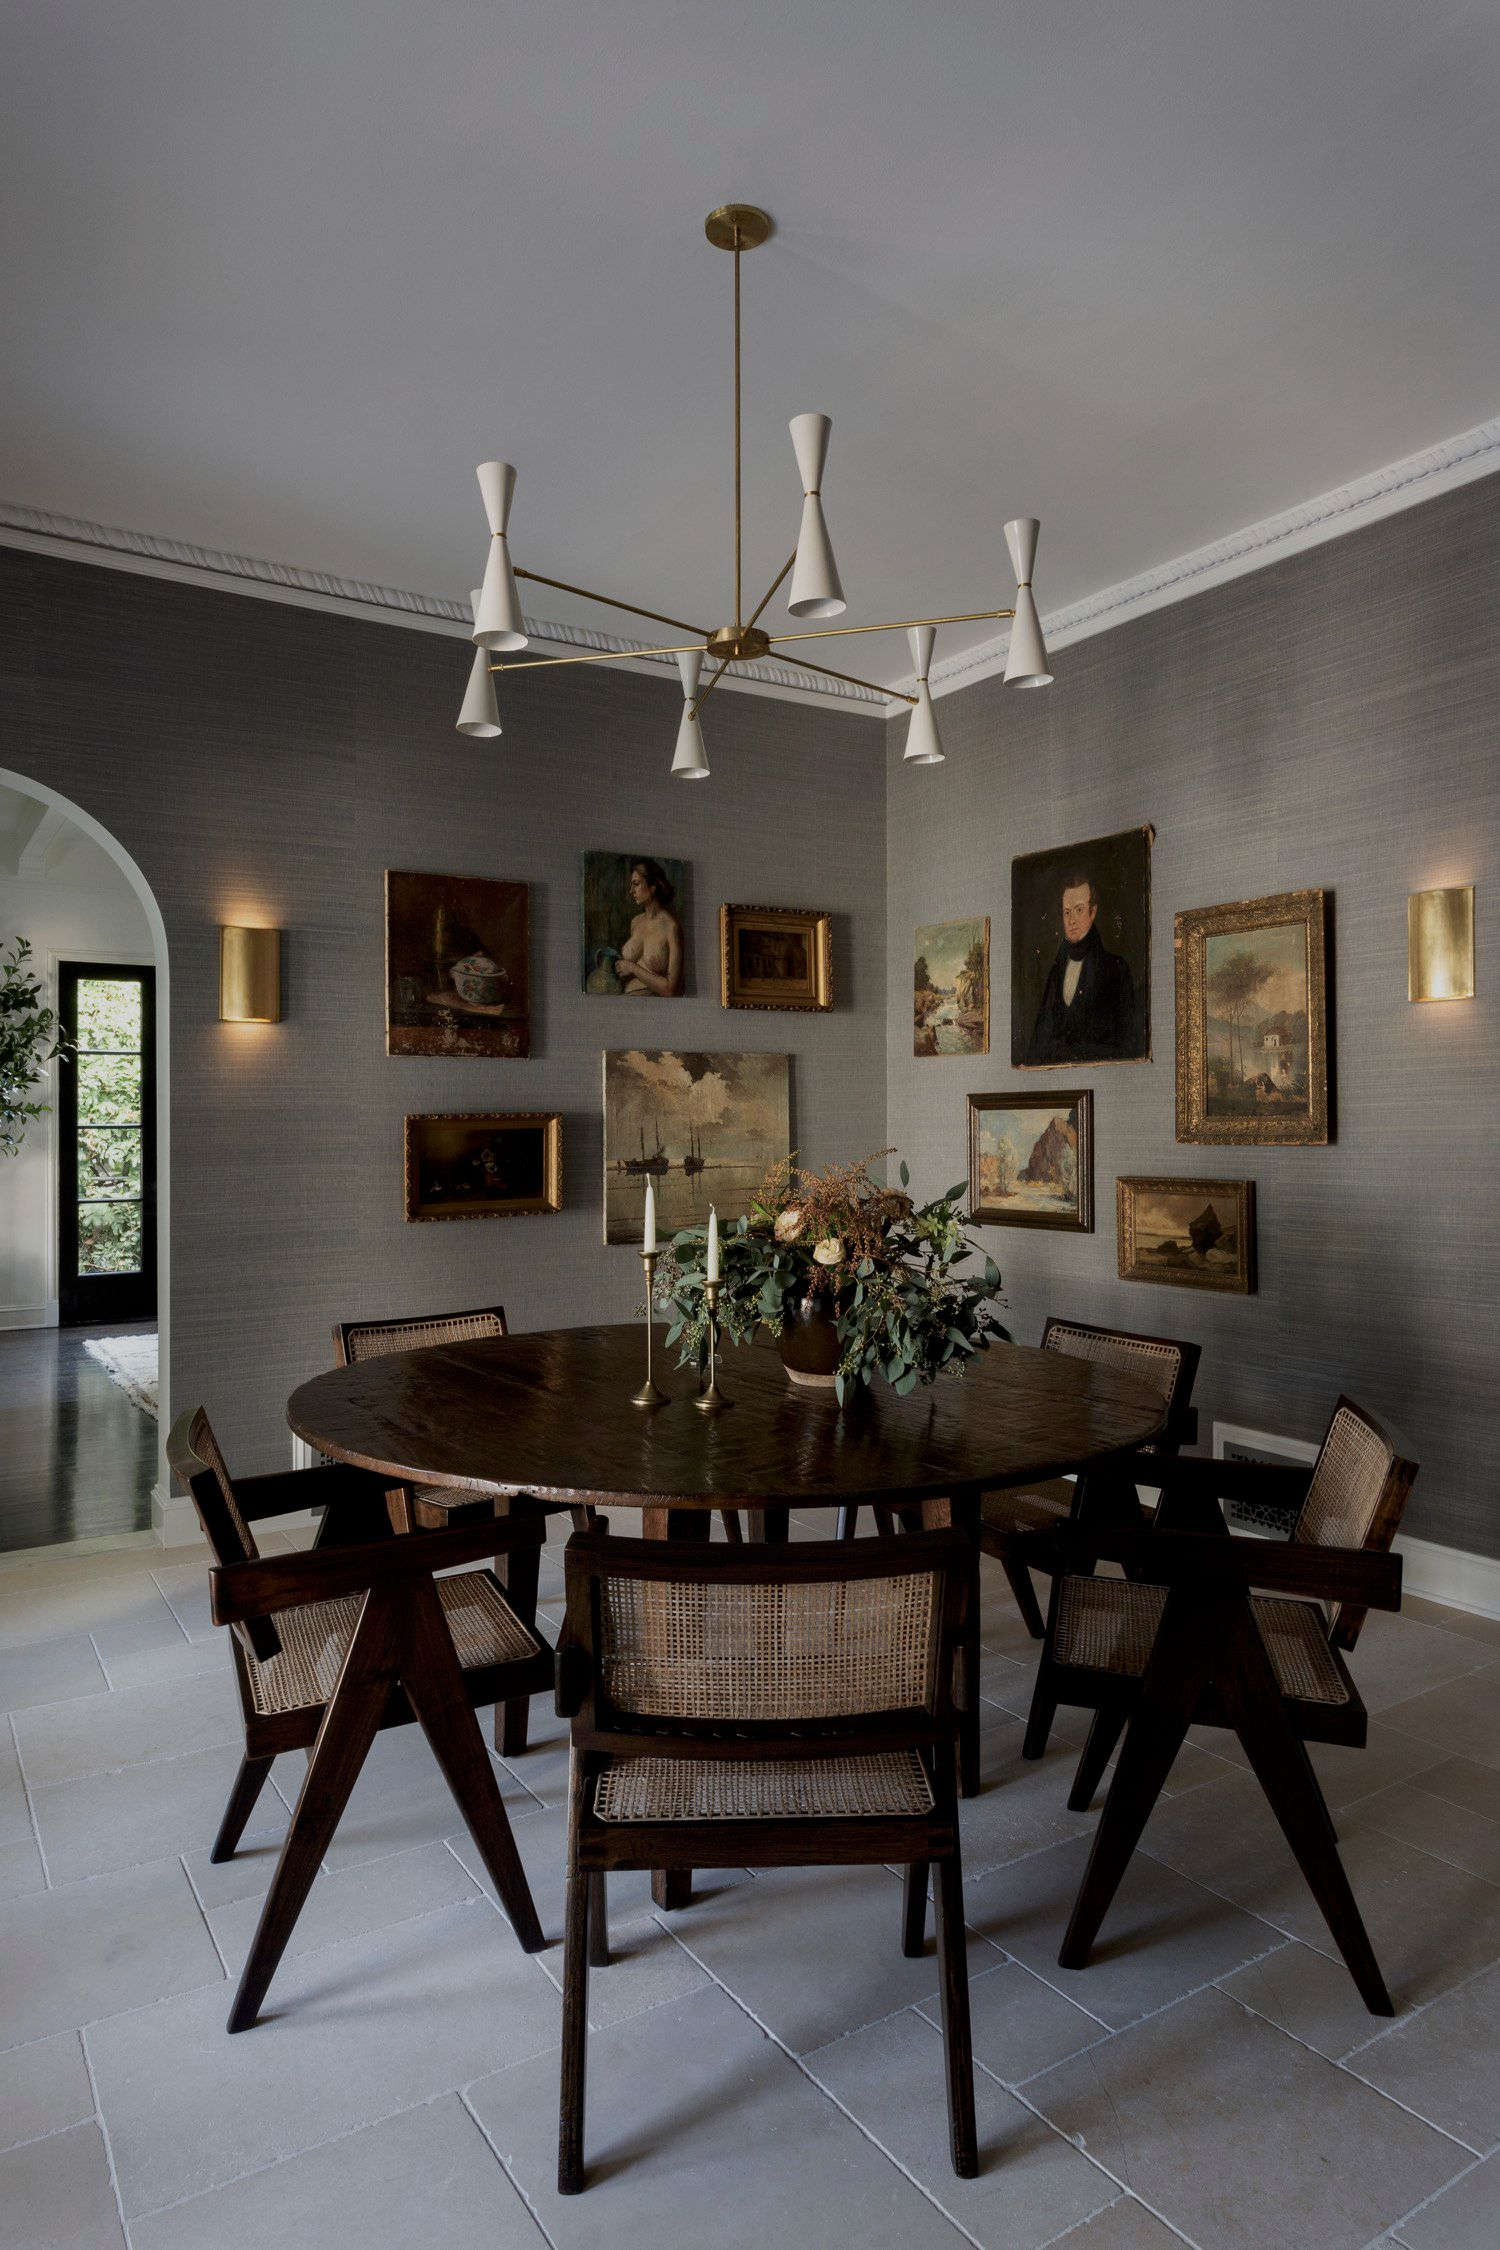 15 Home Decor Trends For 2021 What Are The Decorating Trends For 2021